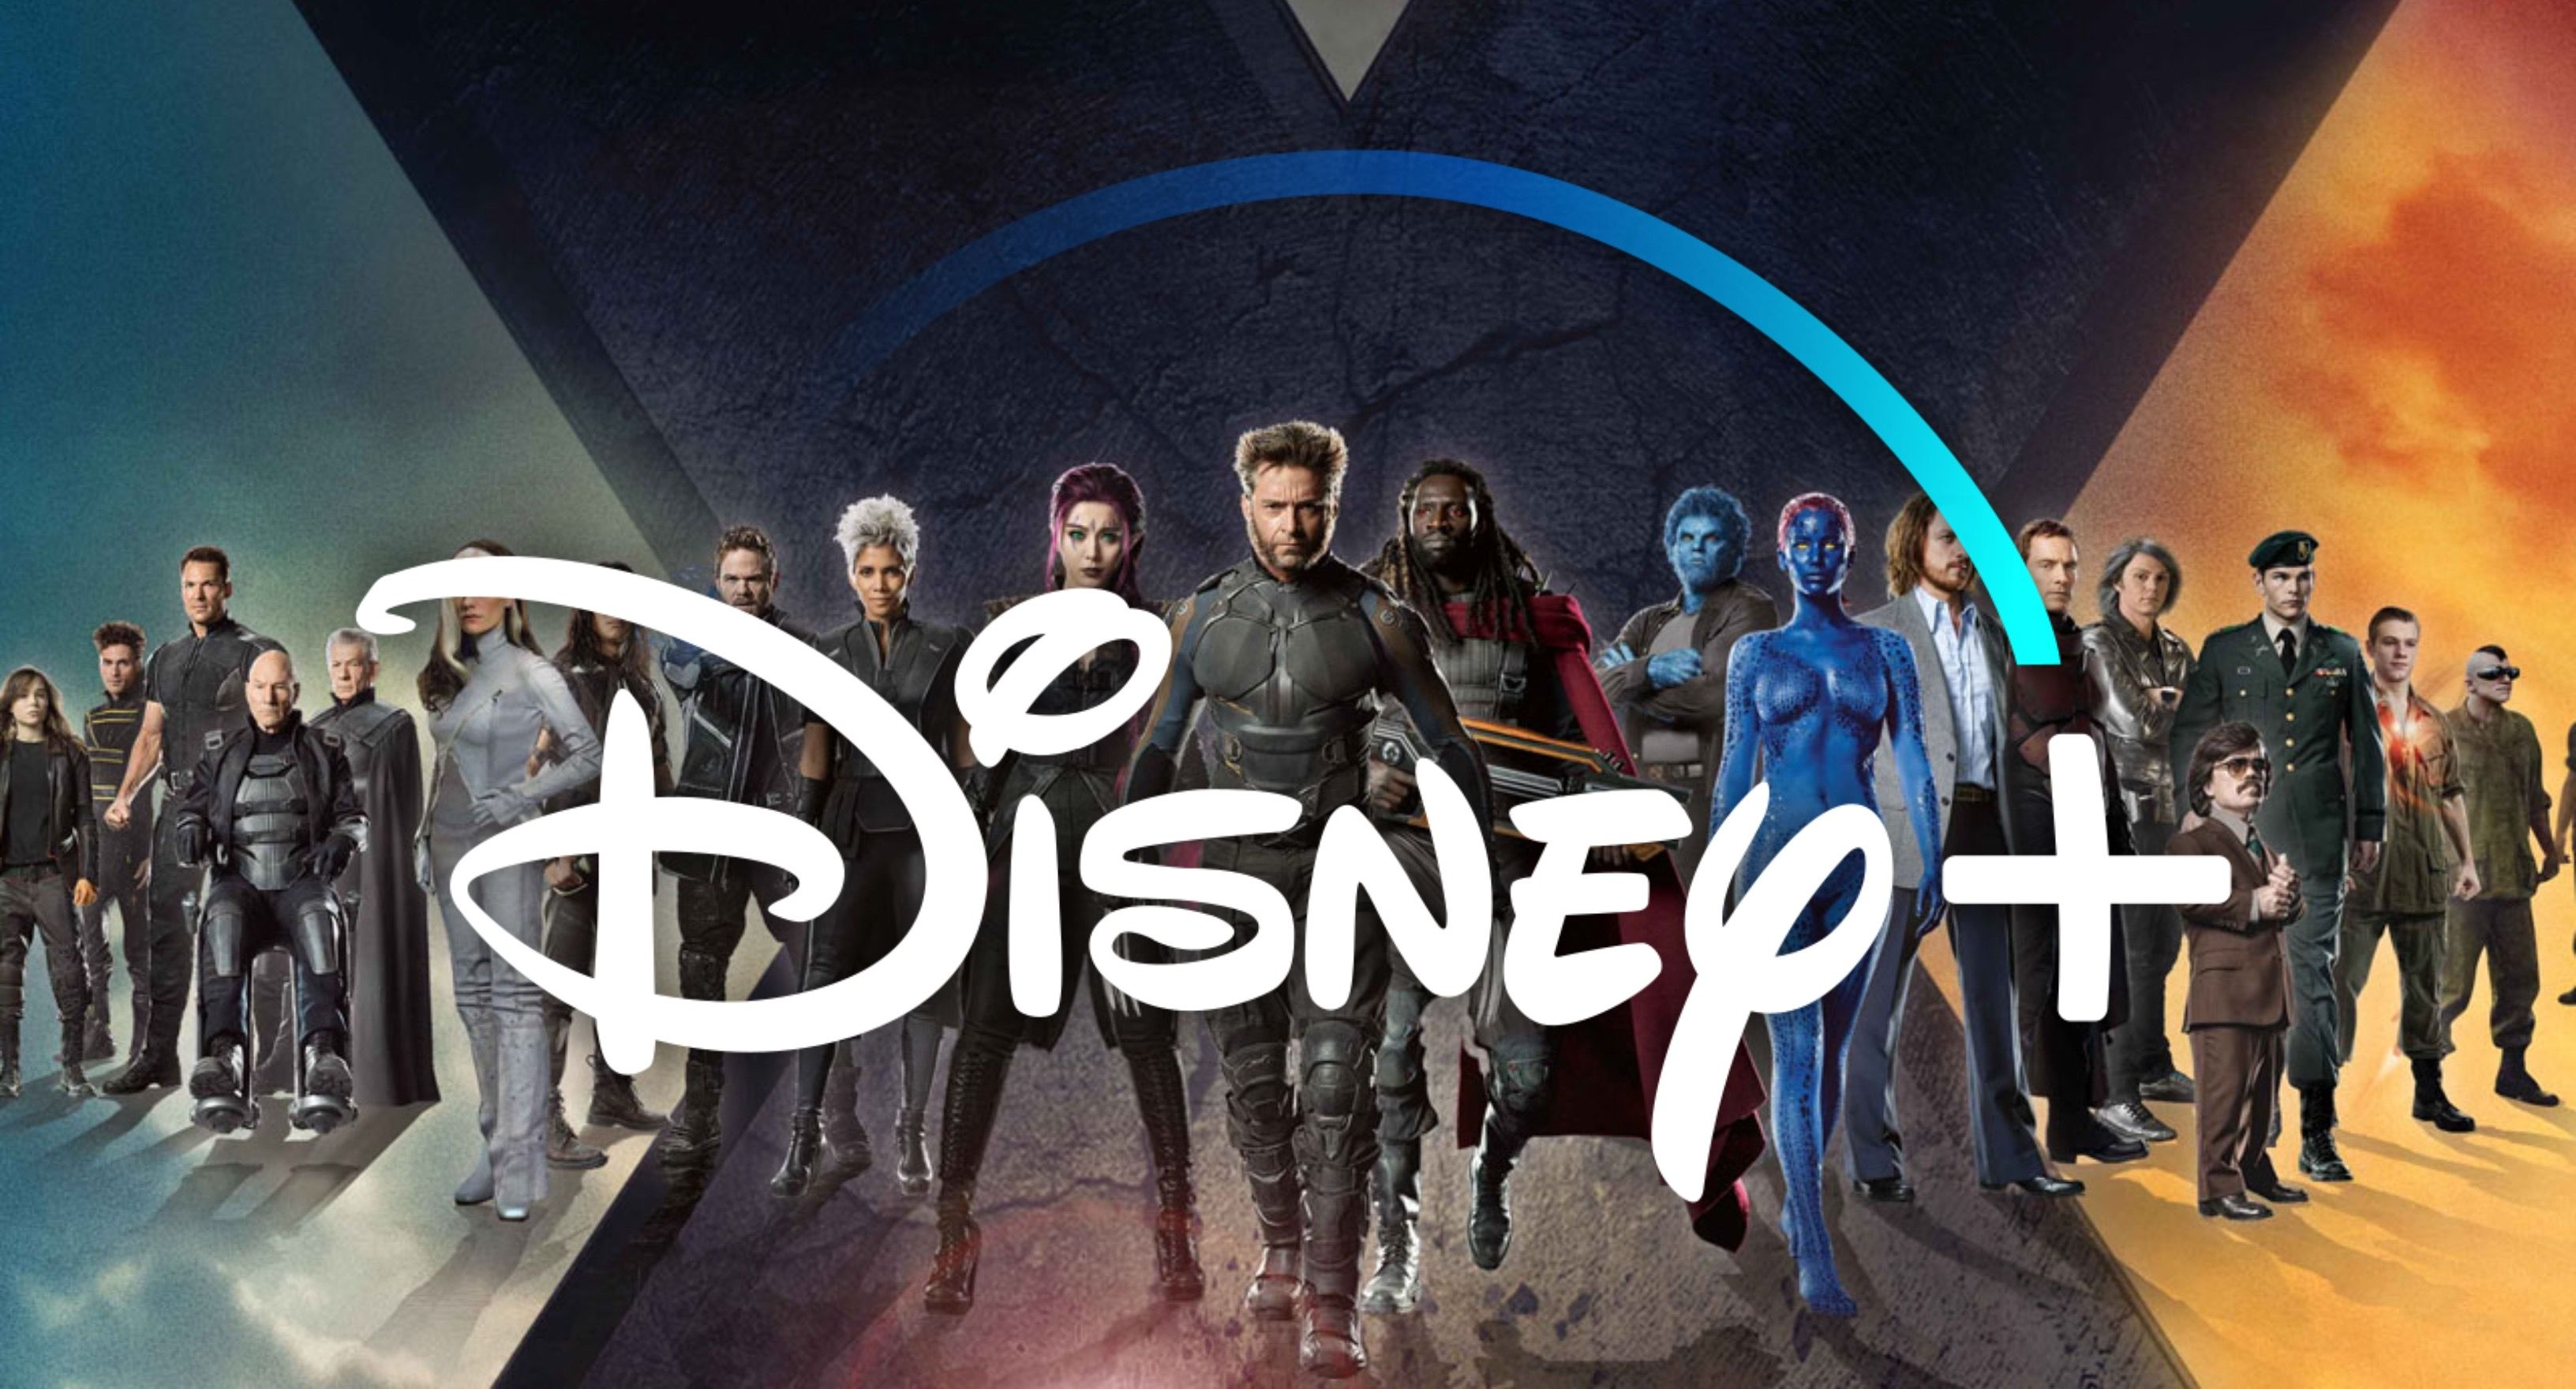 The X Men Films Will Debut Of Disney This Summer In 2020 X Men Disney College Disney World Parks